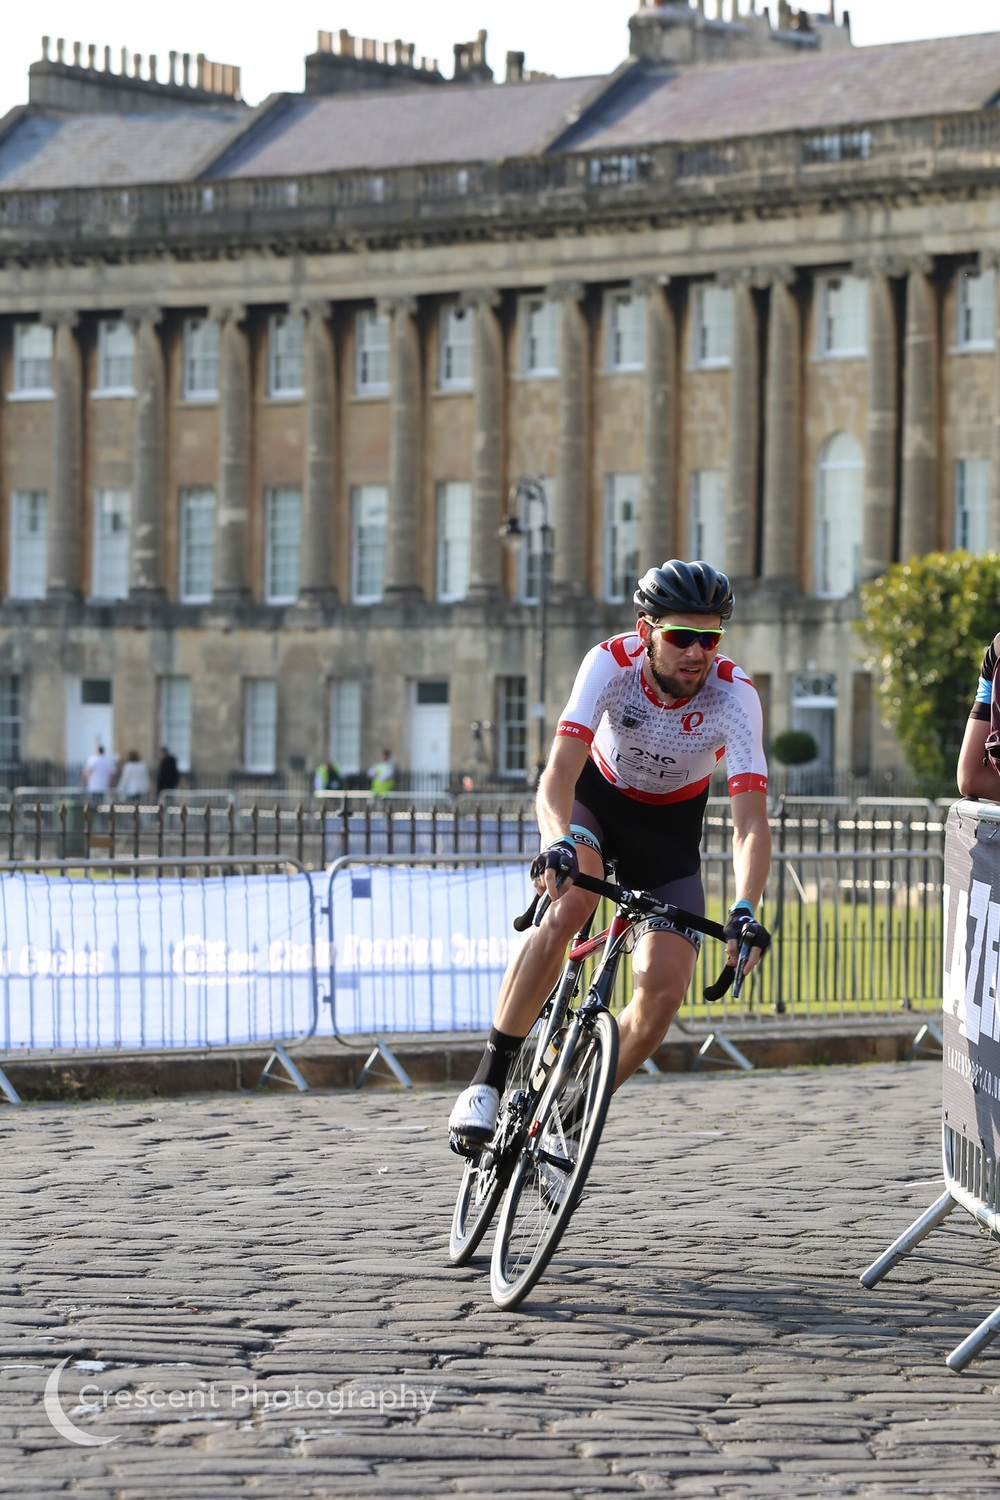 Riding on cobbles on the Royal Crescent